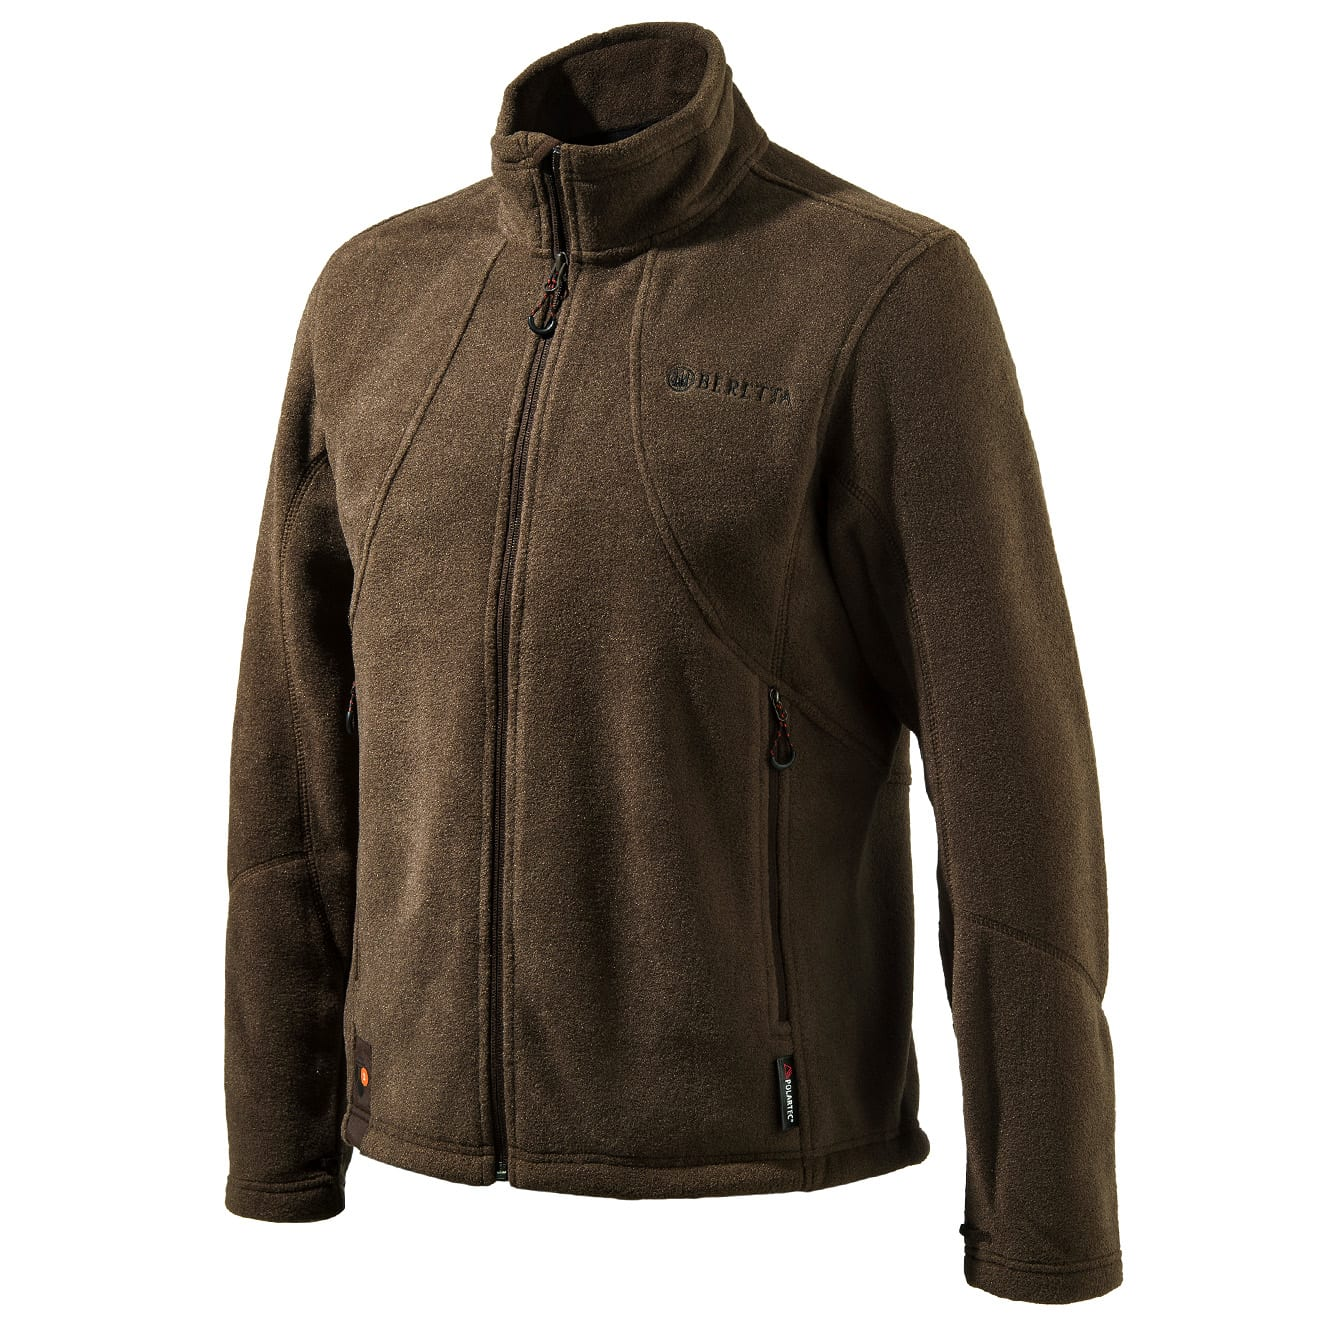 Beretta active track jacket full zip fleece brown